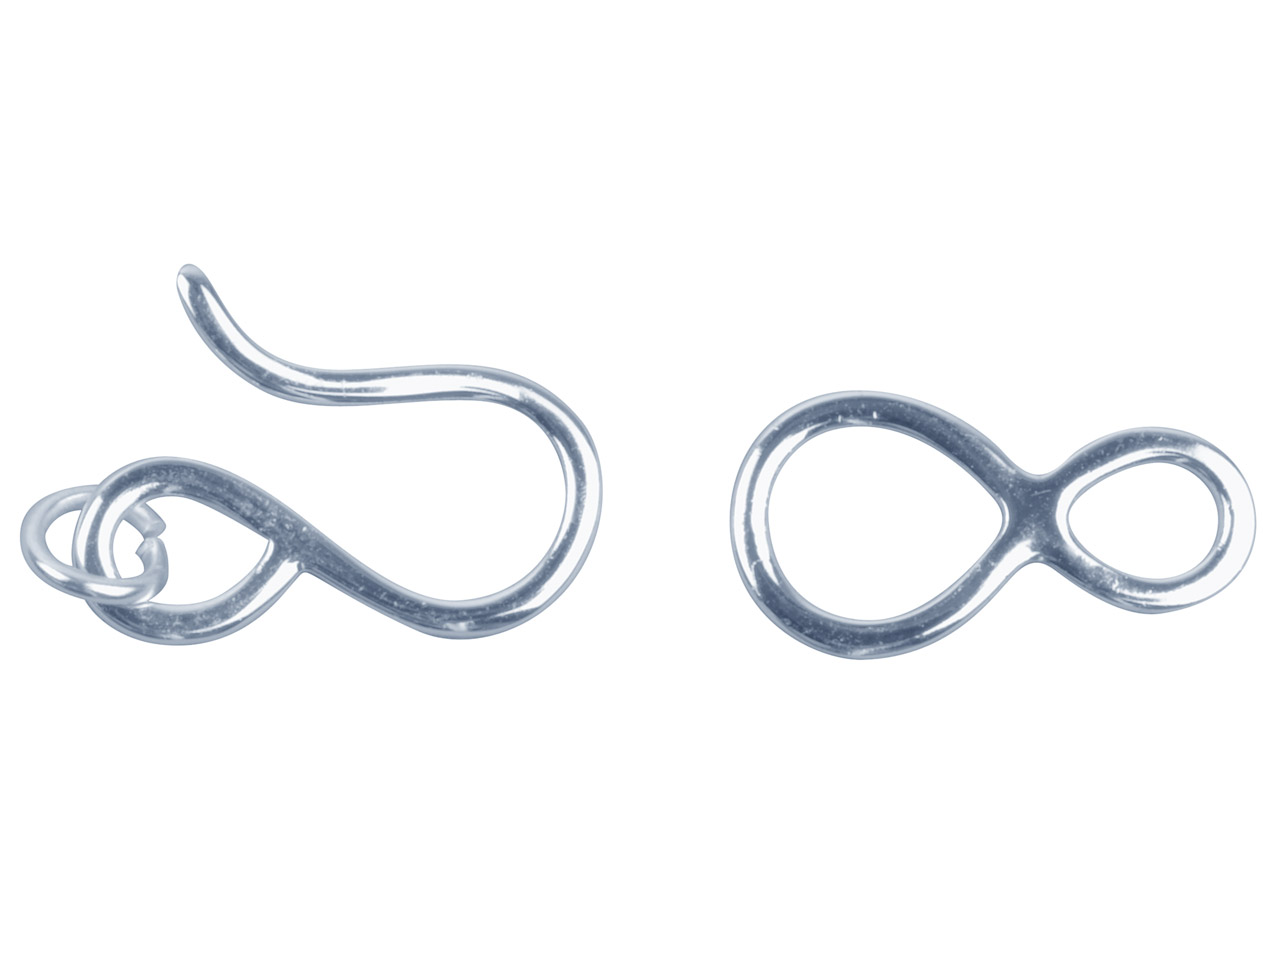 Sterling Silver Hook And Ring Clasp 20mm Hook, 20mm Figure Of 8 Ring